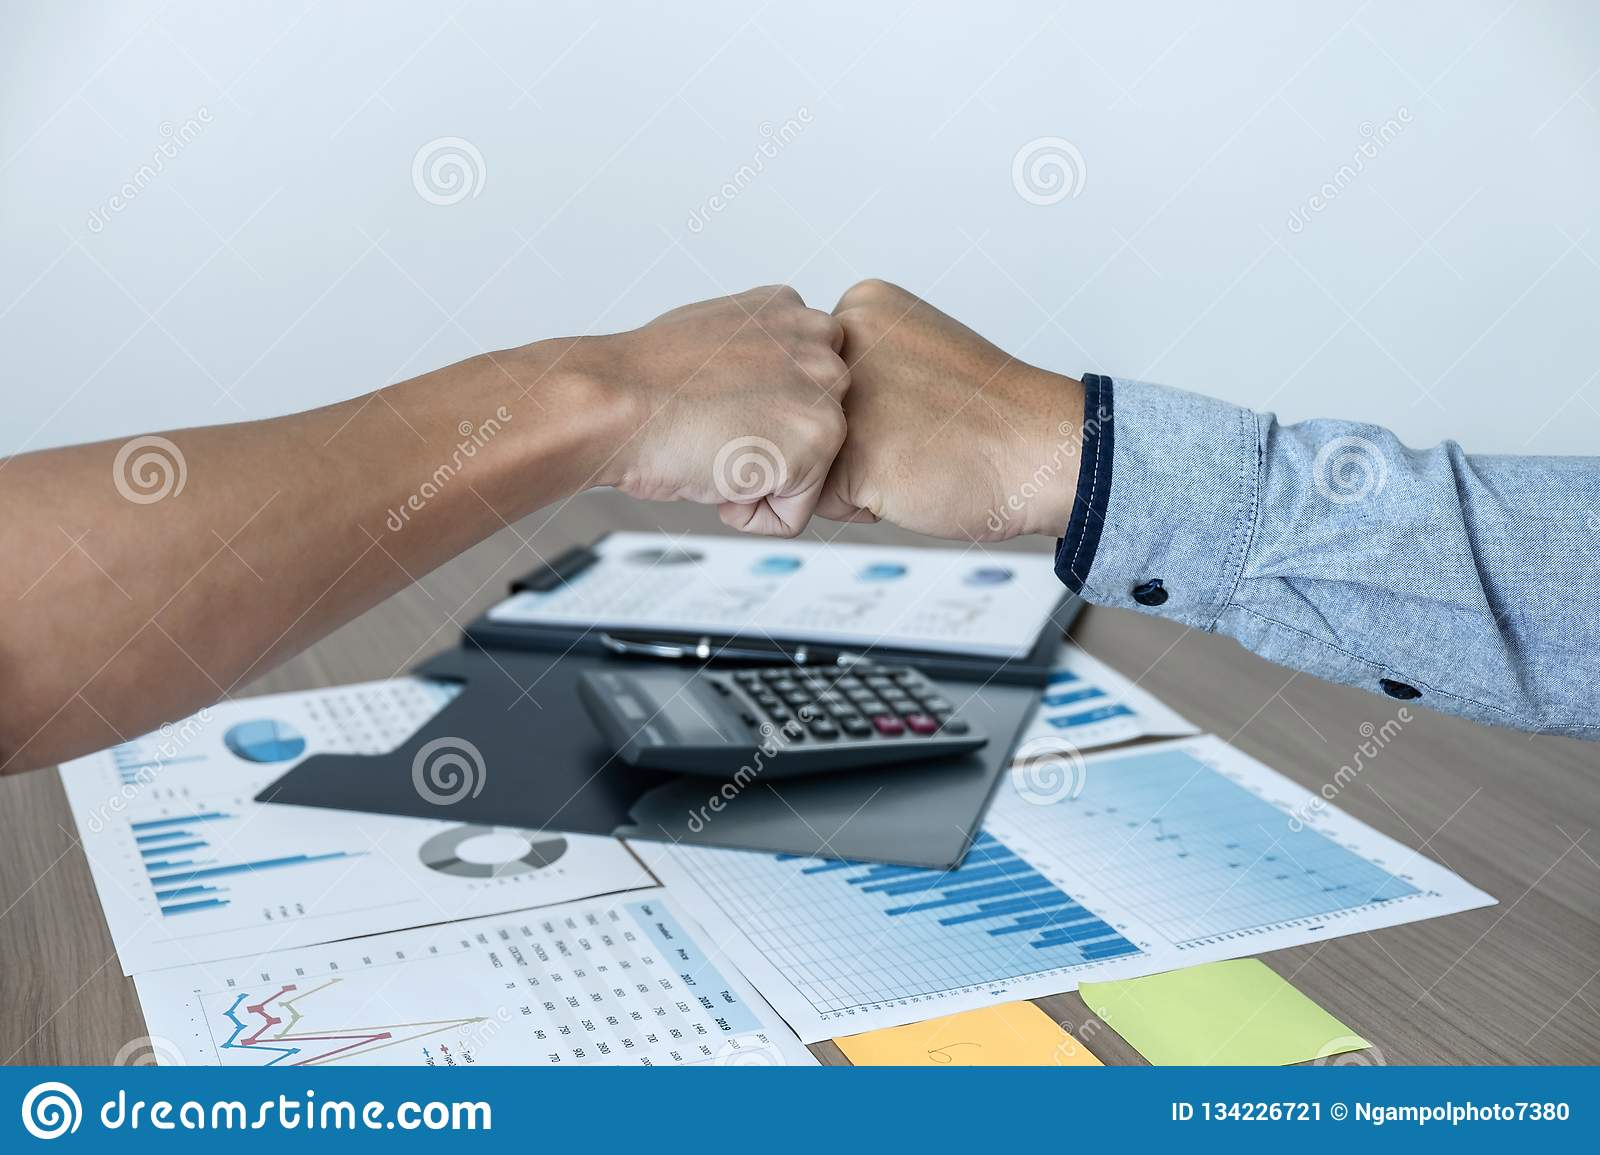 Finishing up a meeting, giving first bump of hand`s two happy business people after contract agreement to become a partner,